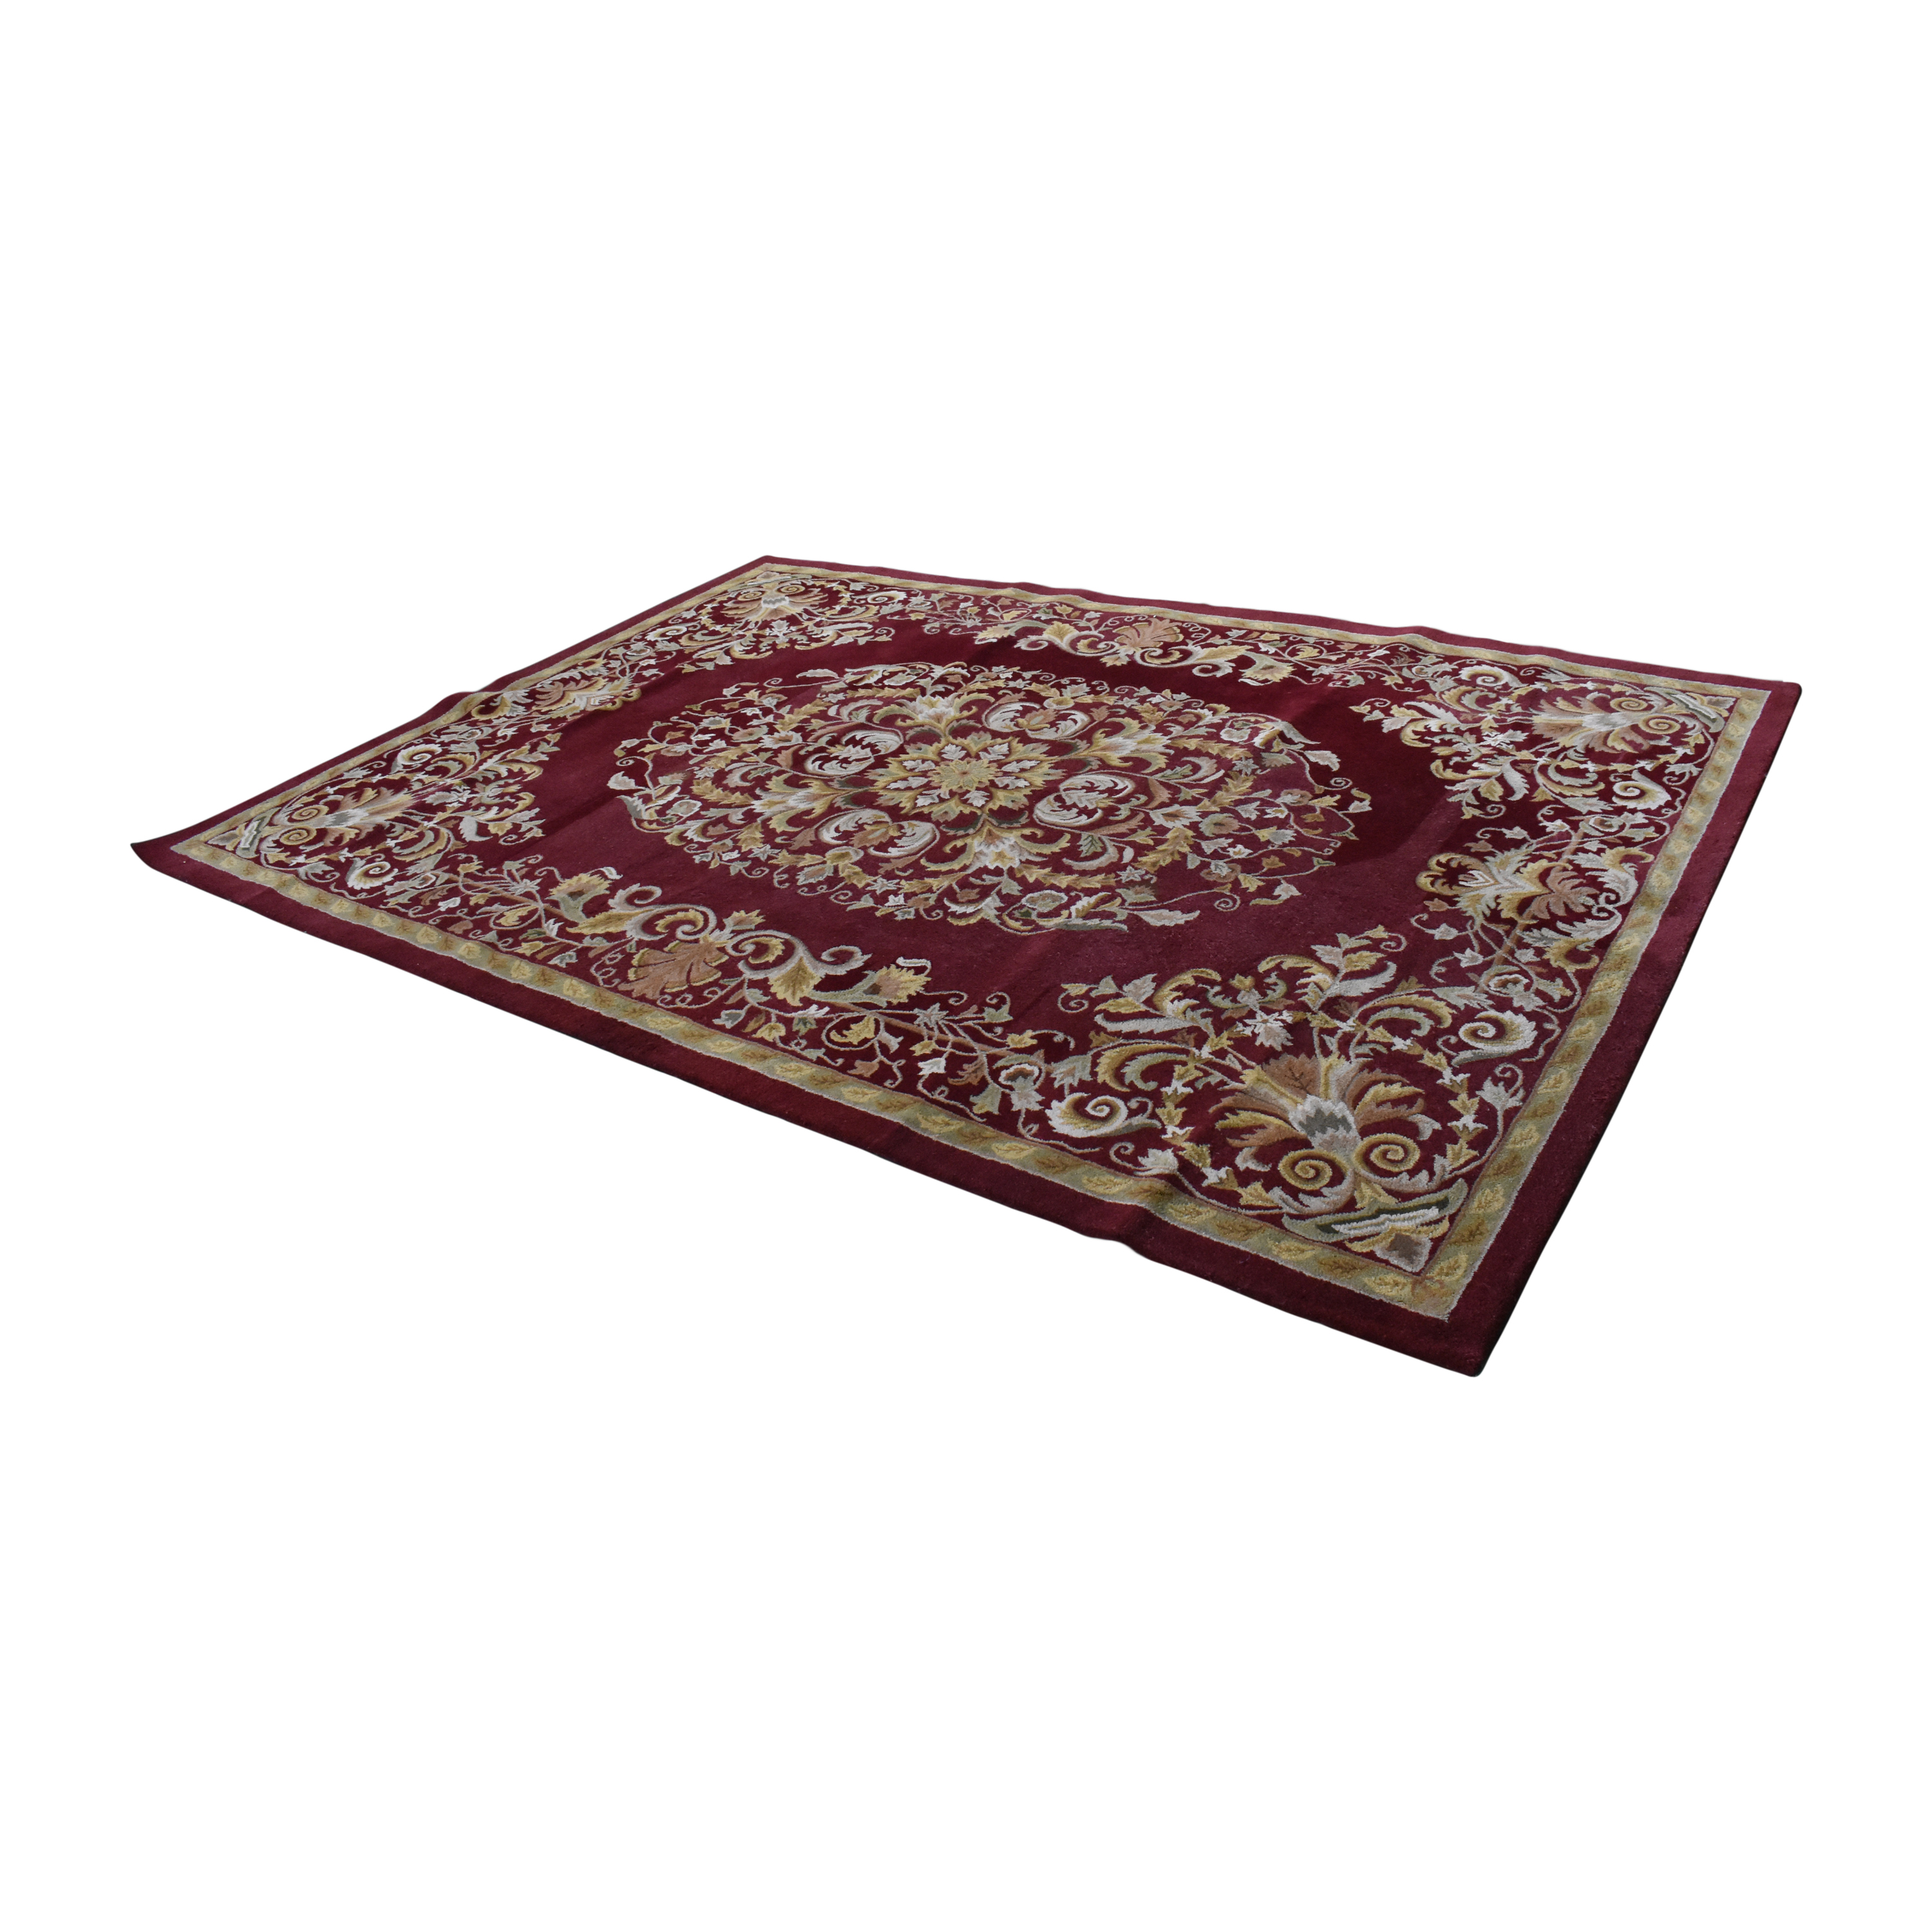 Safavieh Safavieh Heritage Collection Rug Red and gold